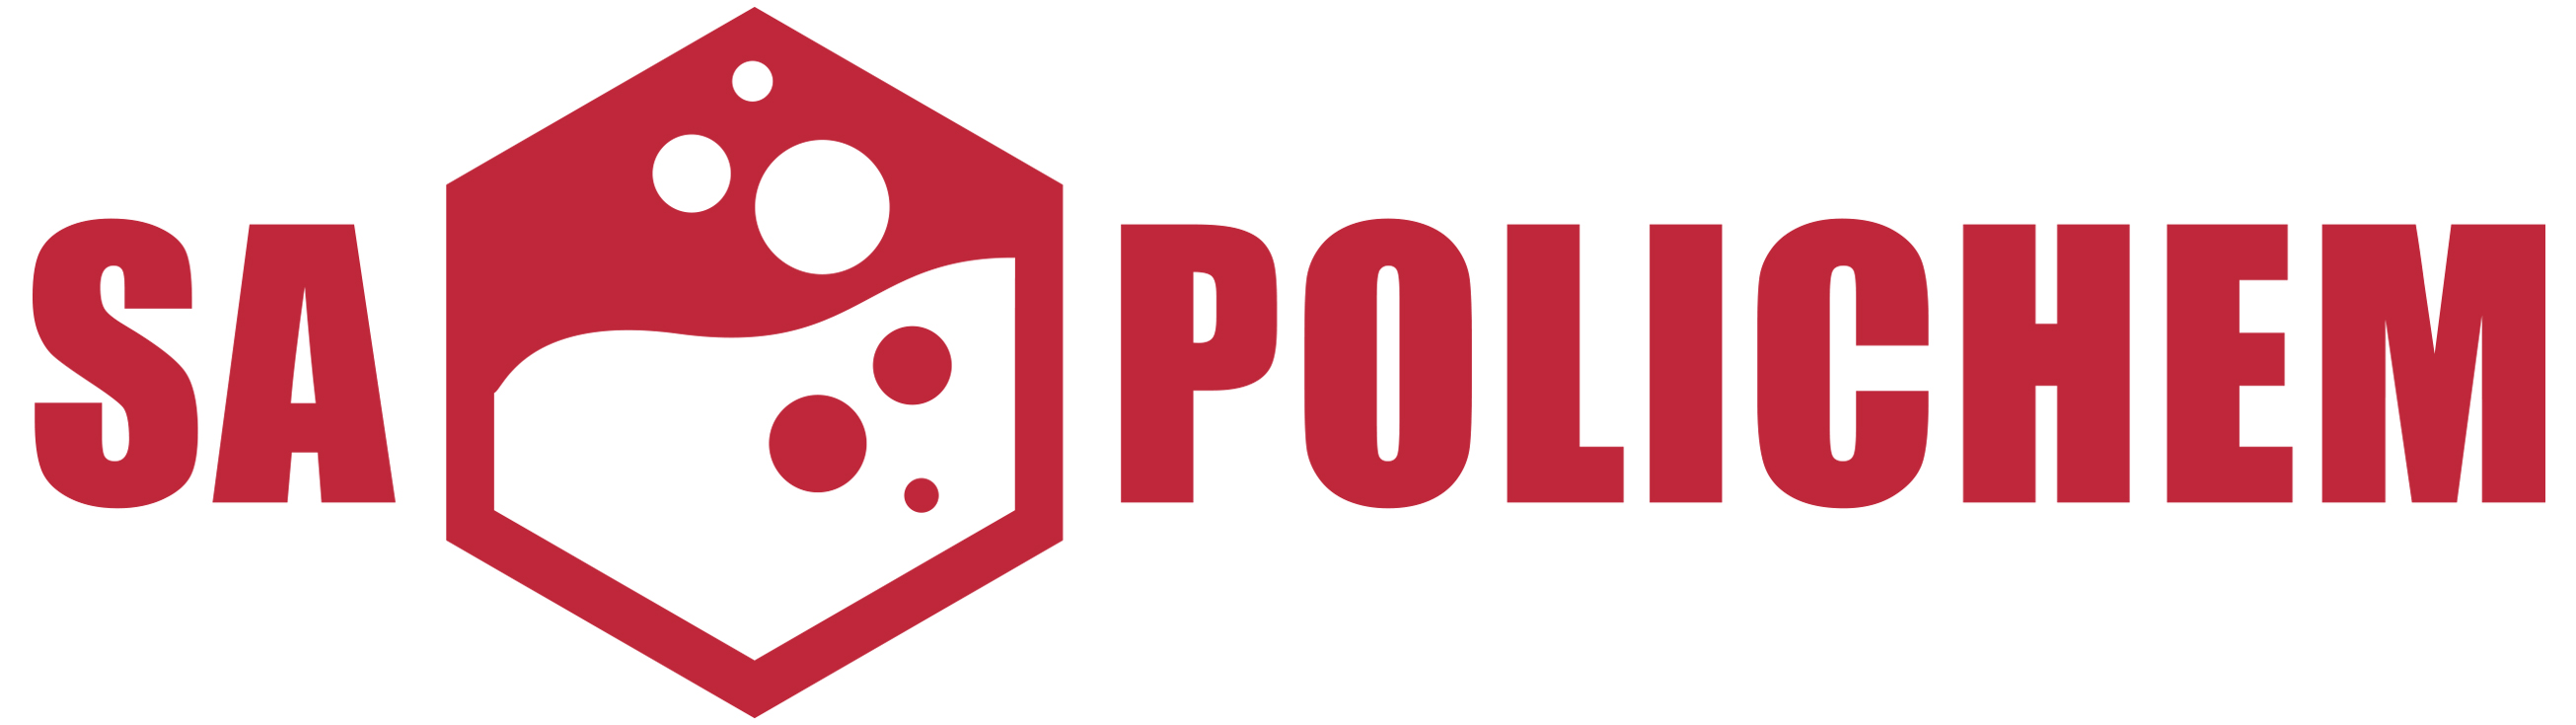 Sa polichem sa polichem is a chemical manufacturing company iso 9001 sacas accredited and bee level 2 that was established in 2002 with a full manufacturing facility xflitez Choice Image